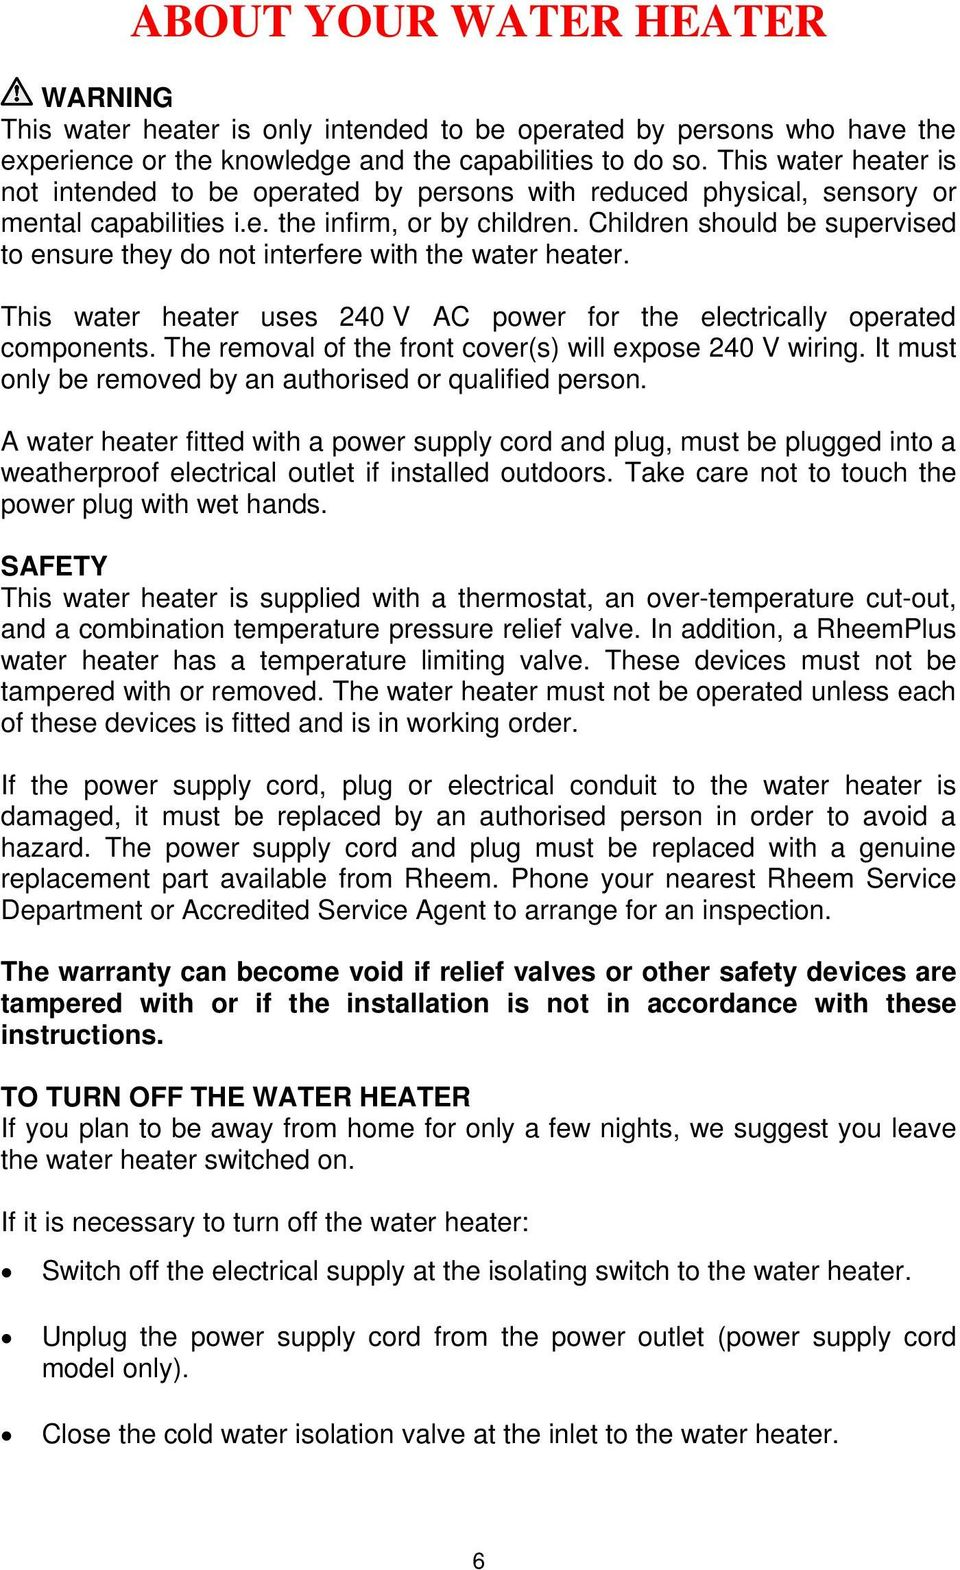 Owners Guide And Installation Instructions Electric Domestic Water Wiring A Heater Switch Children Should Be Supervised To Ensure They Do Not Interfere With The This